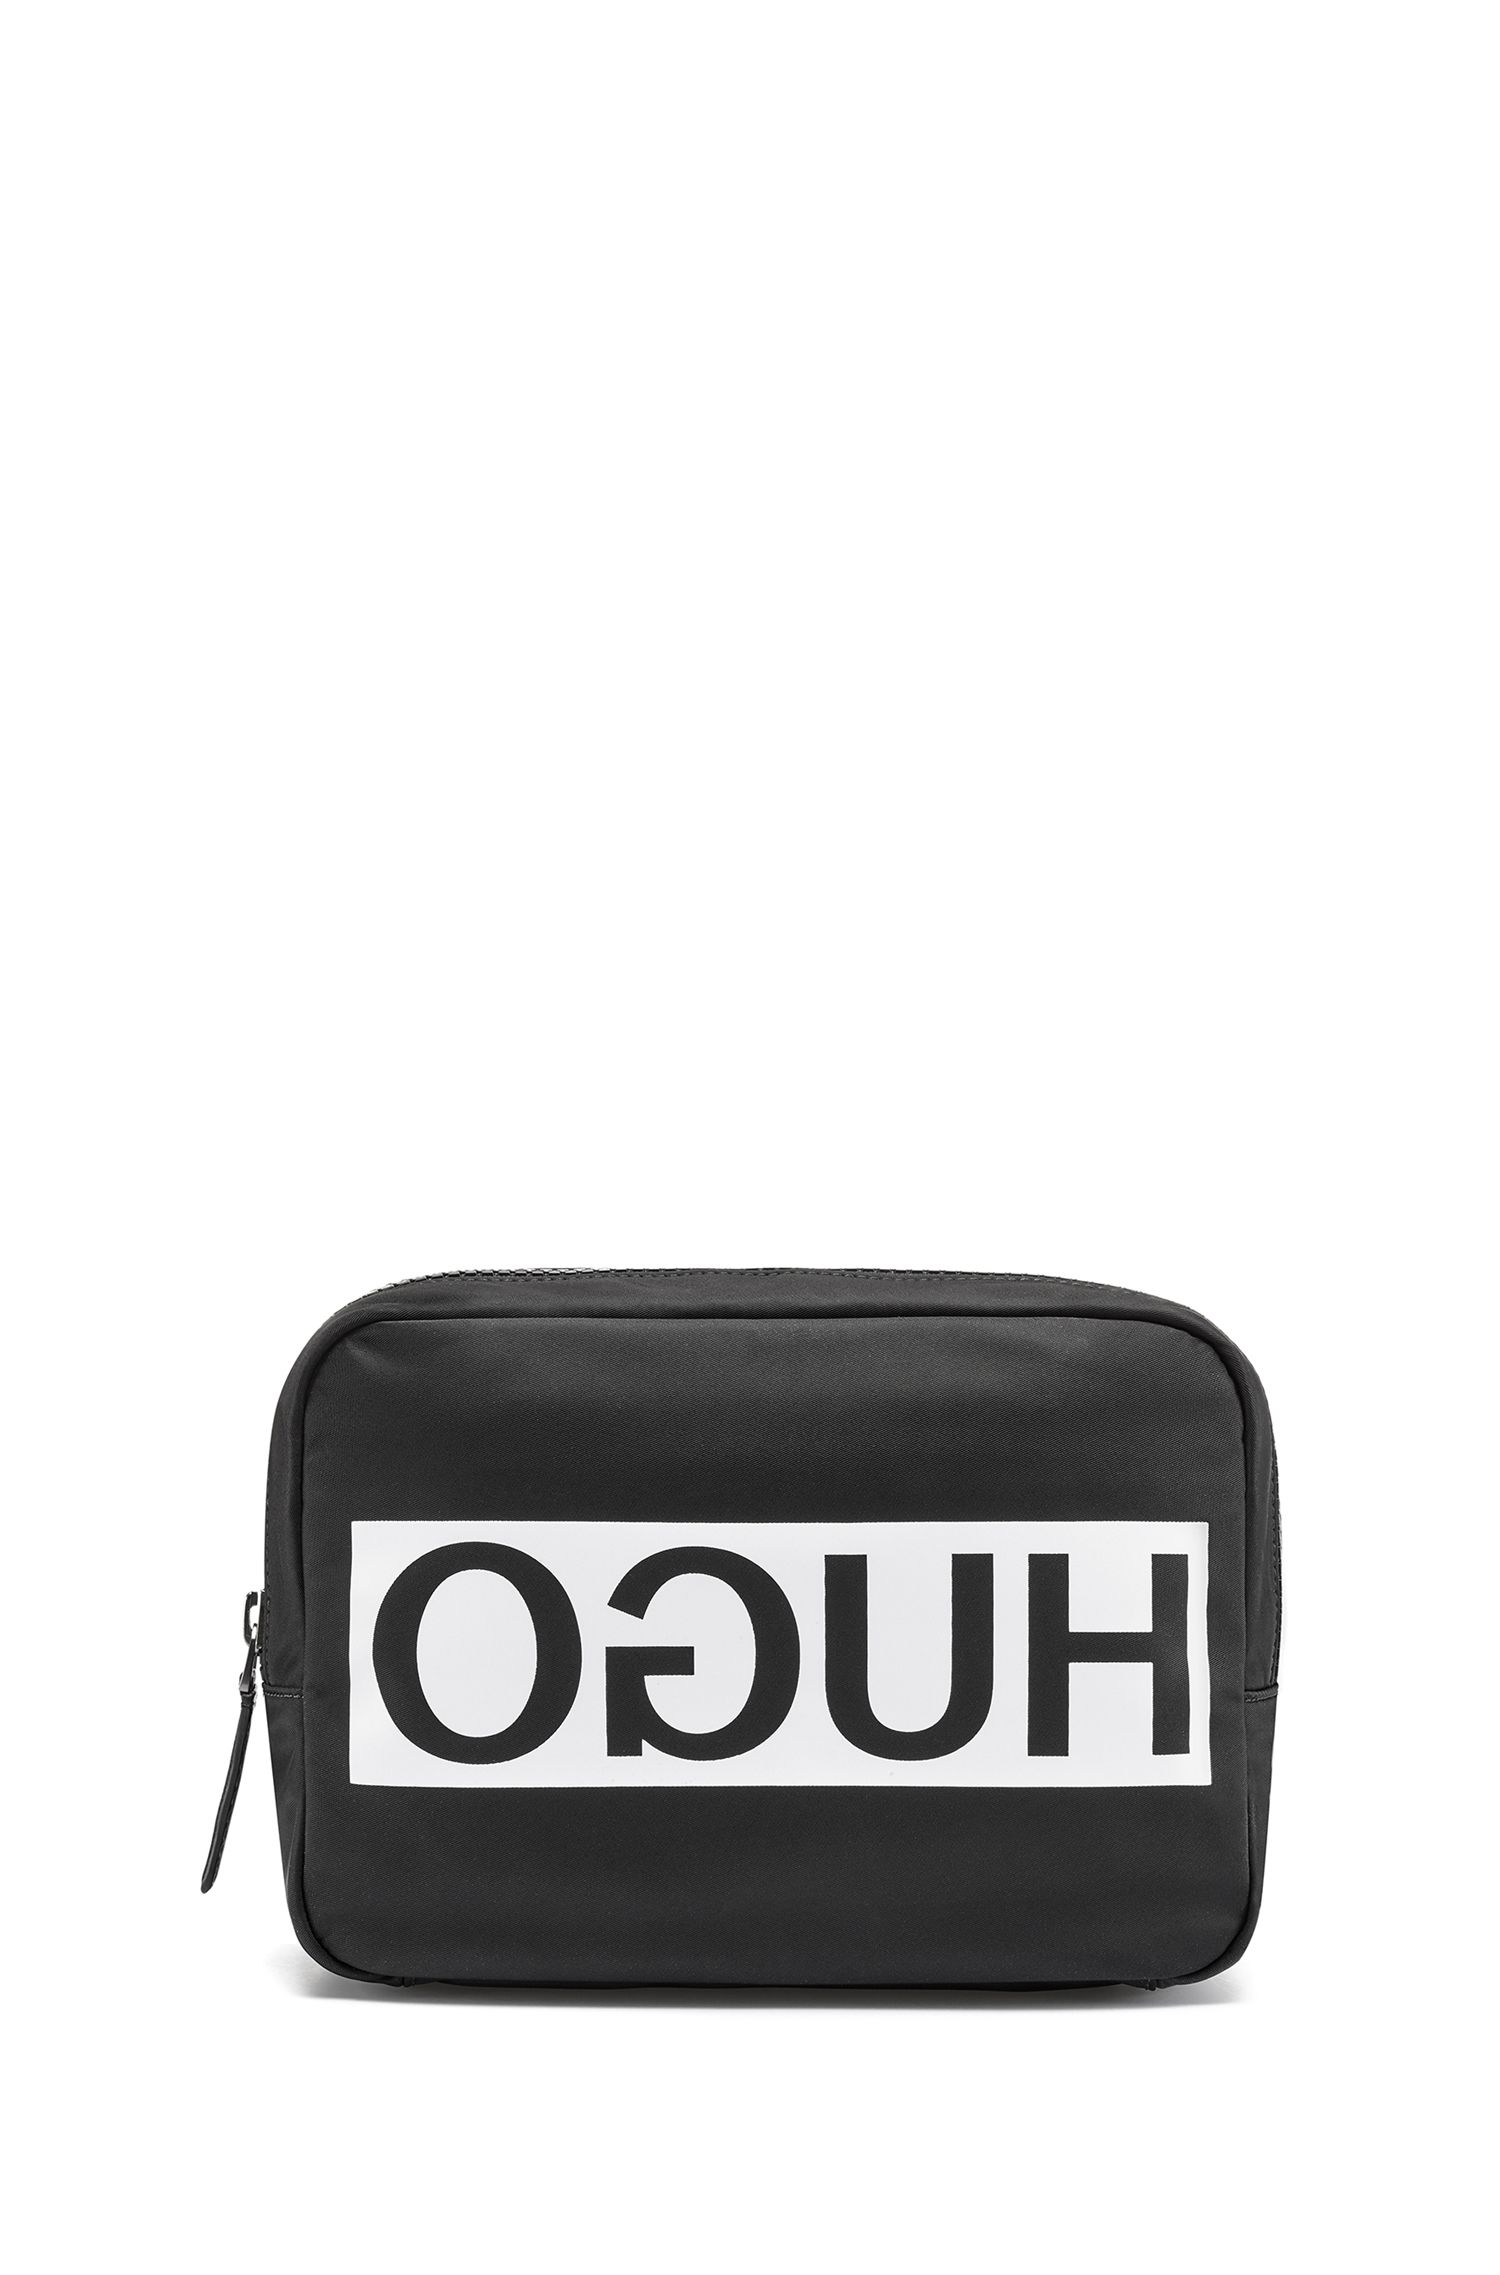 Nylon washbag with contrast reverse logo